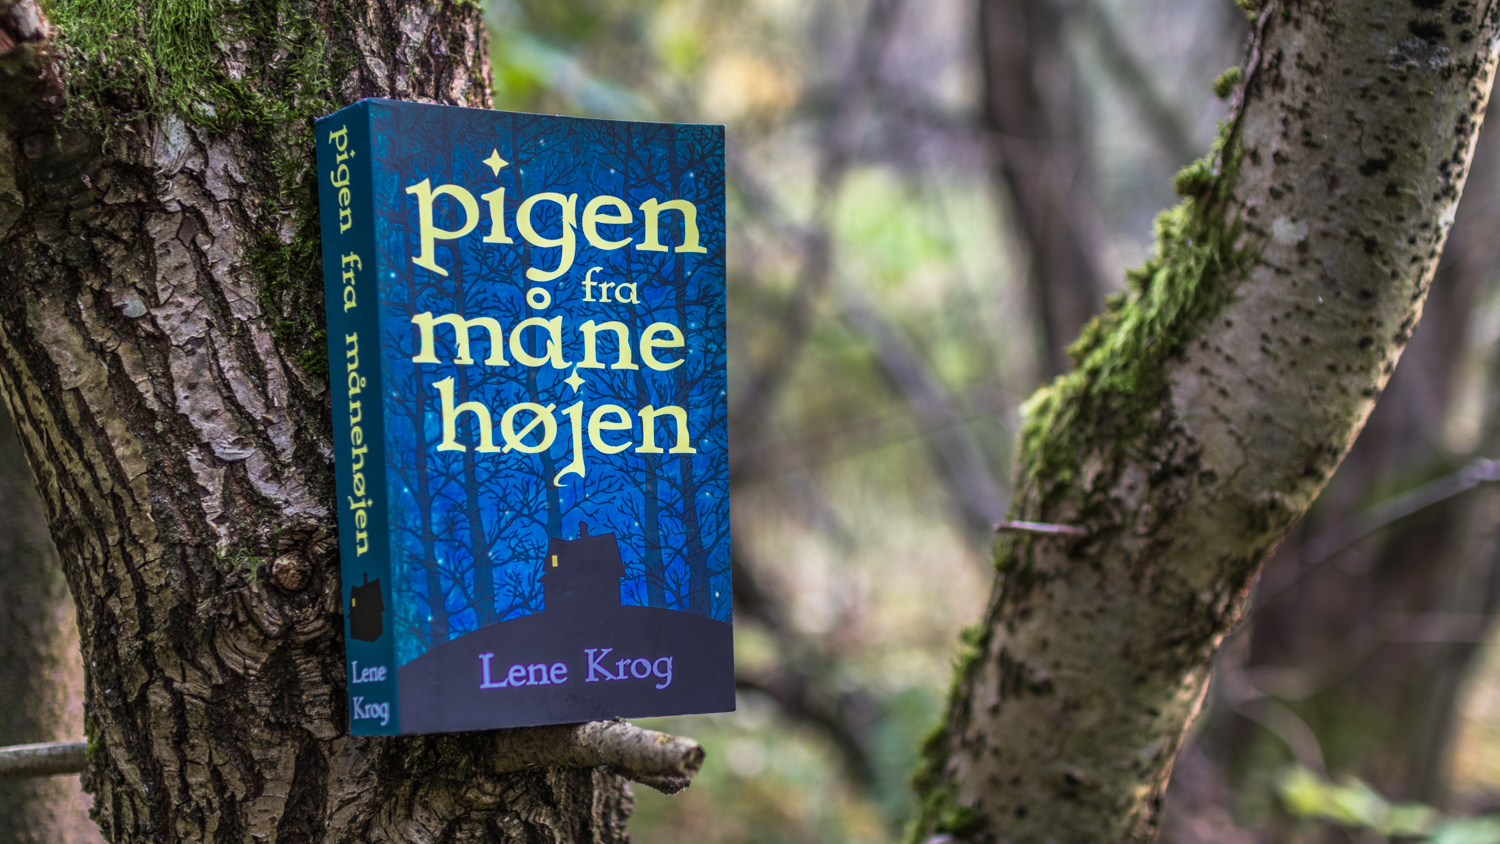 The book Pigen fra Månehøjen on a tree branch